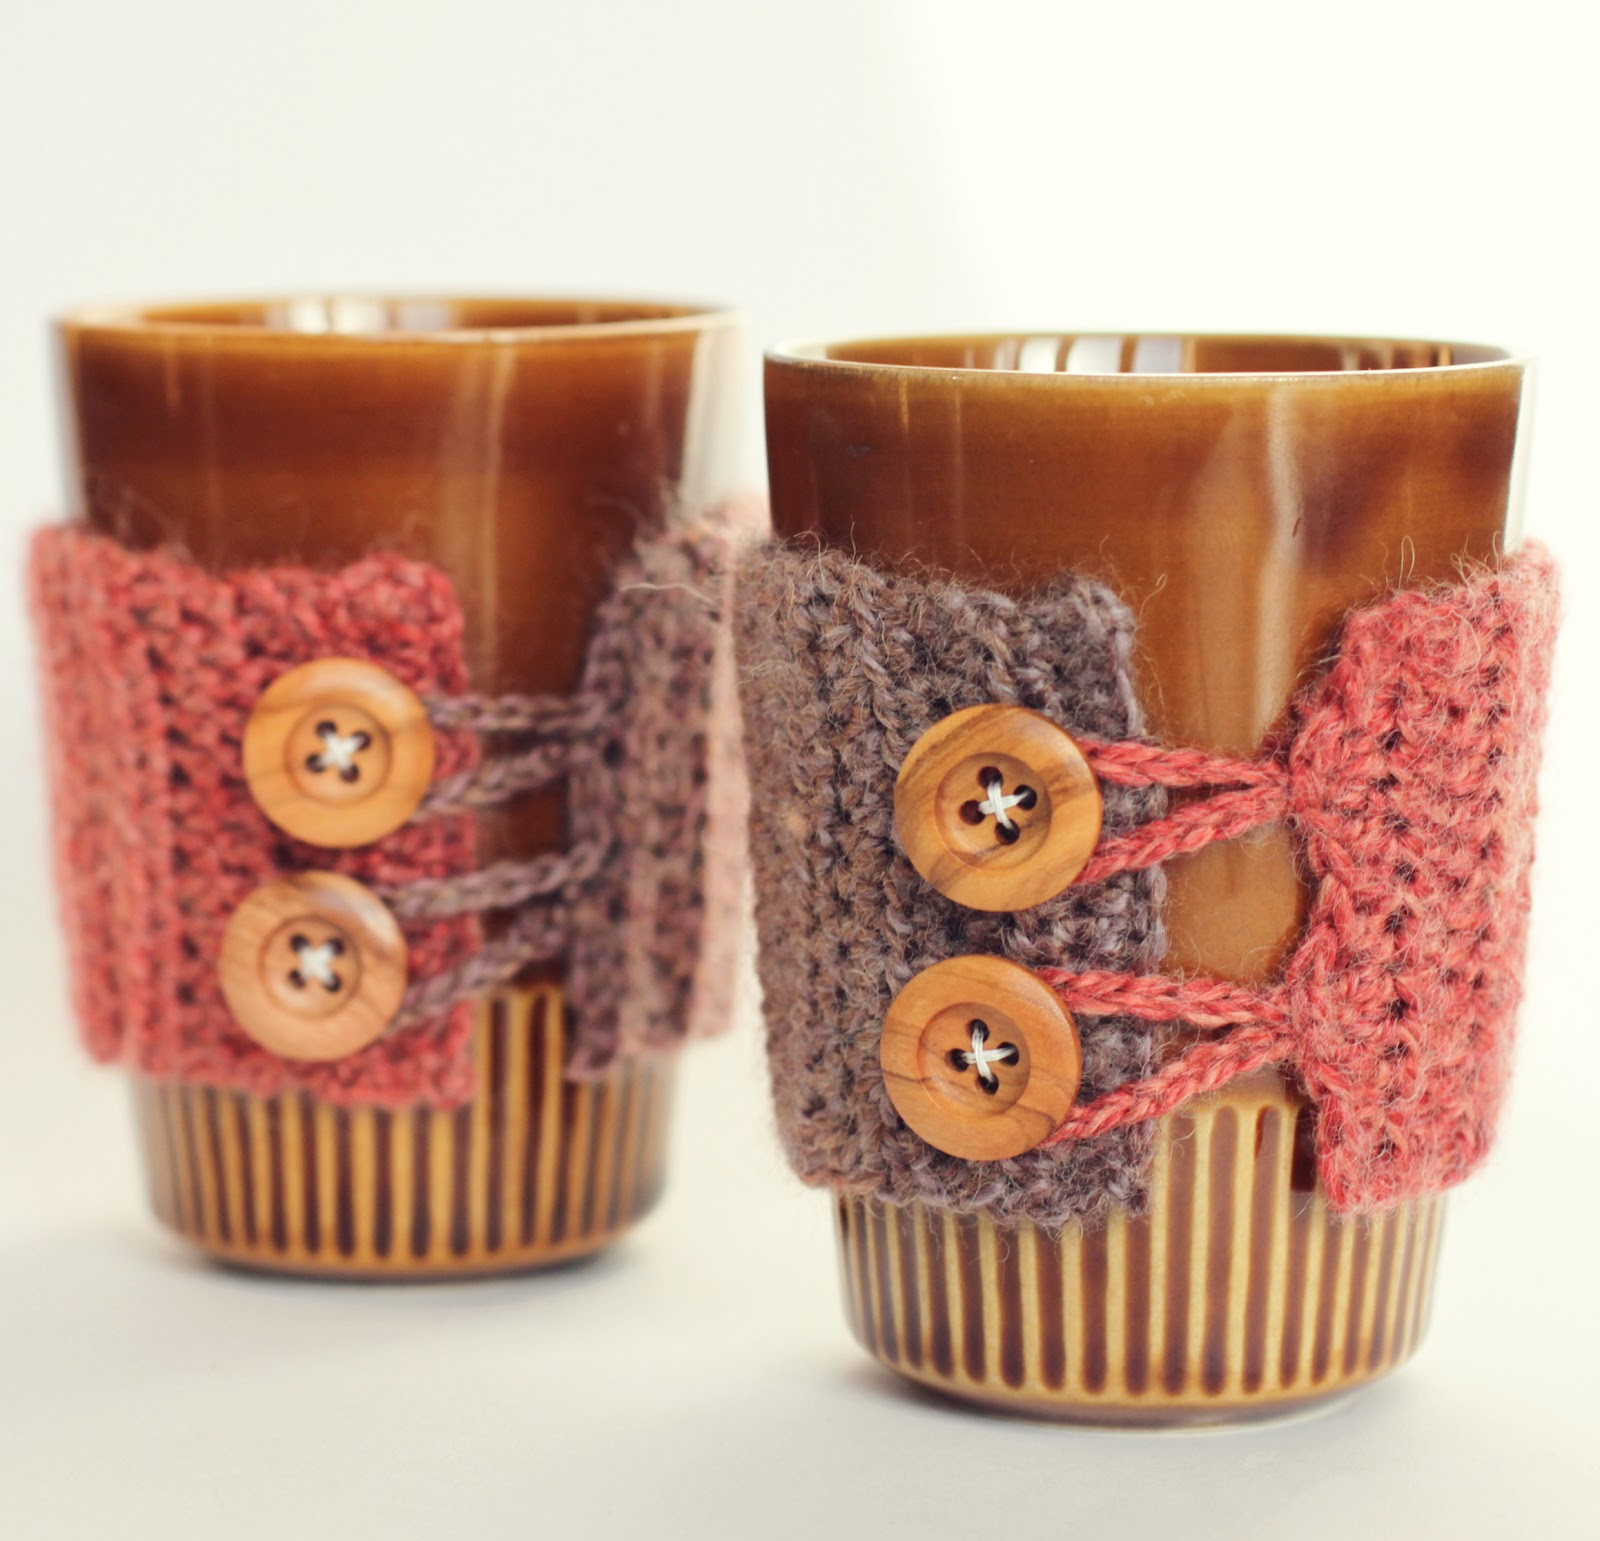 Crochet Coffee Cup Cozy Lovely L♥valizious Mug Cozy Tutorial Of Crochet Coffee Cup Cozy Inspirational Crochet Class Beginning Crochet Sparkleez Crystles